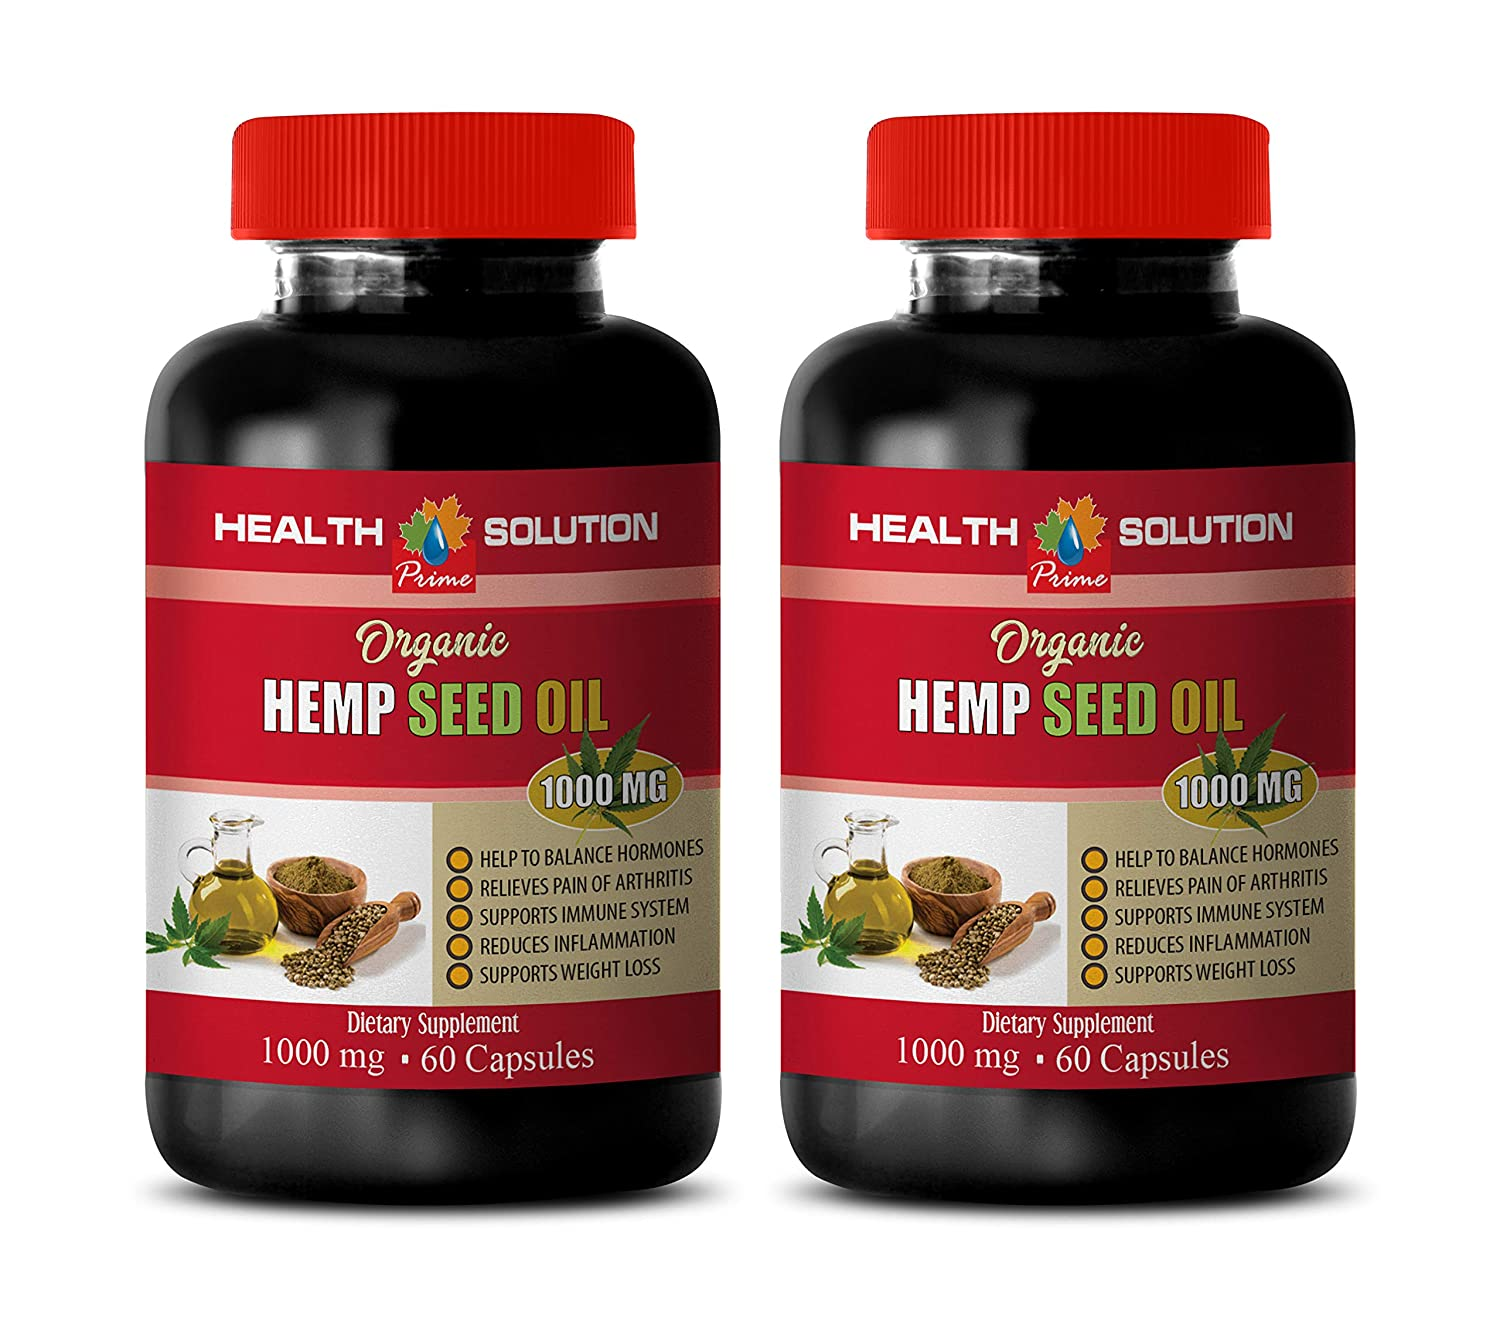 Pain Relief Pills Extra Strength – Hemp Seed Oil Organic 1000 mg – Dietary Supplement – Hemp Oil in Capsule Form – 2 Bottles 240 Liquid Capsules